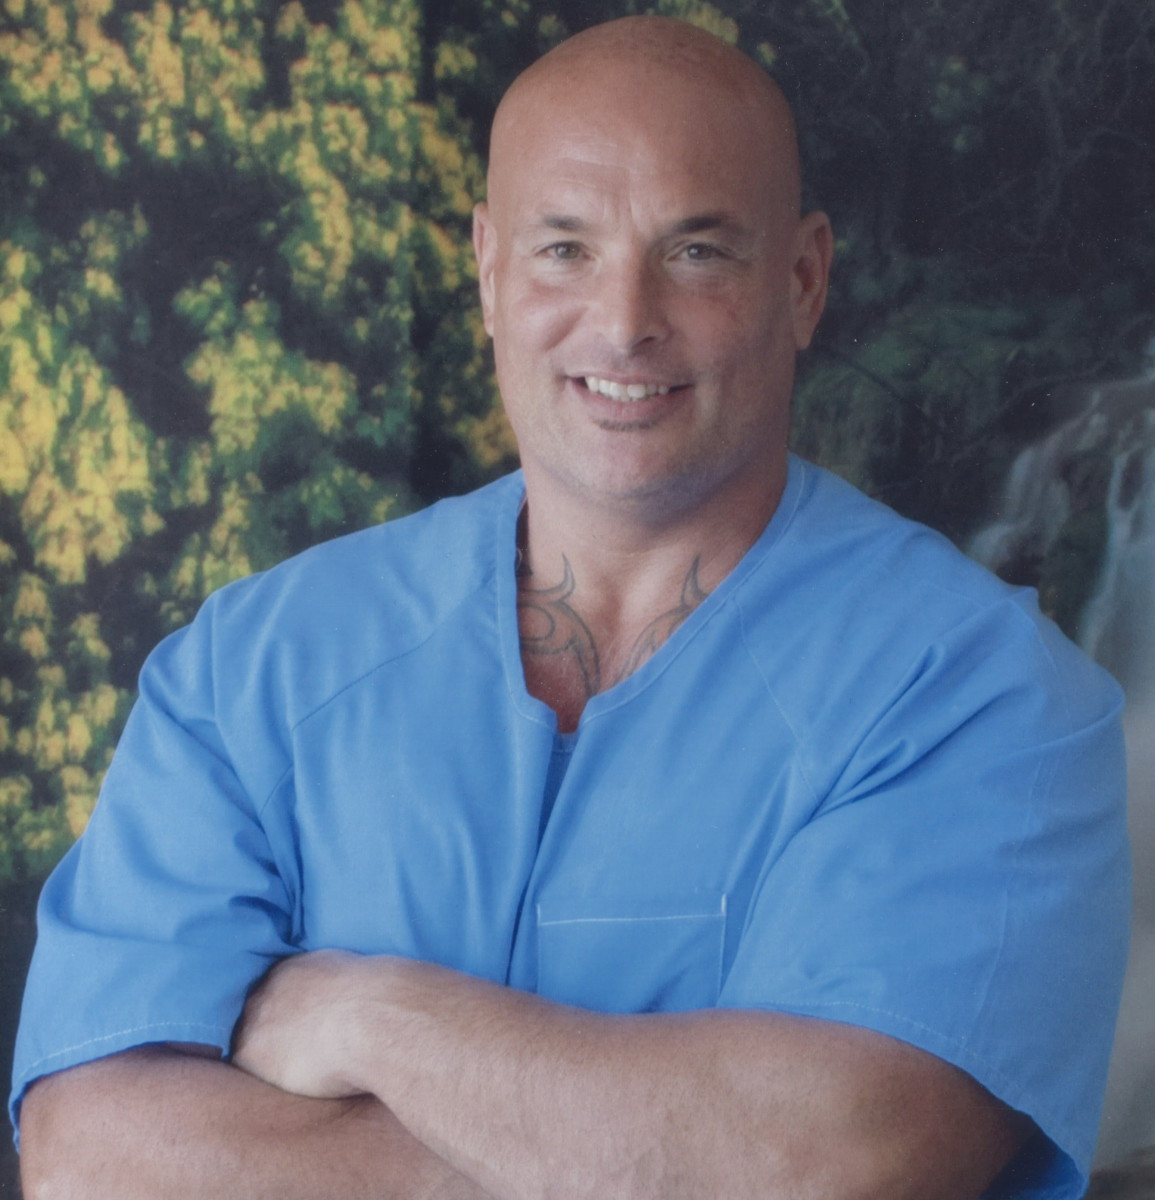 Naposki poses for a photo in his prison uniform in 2017.